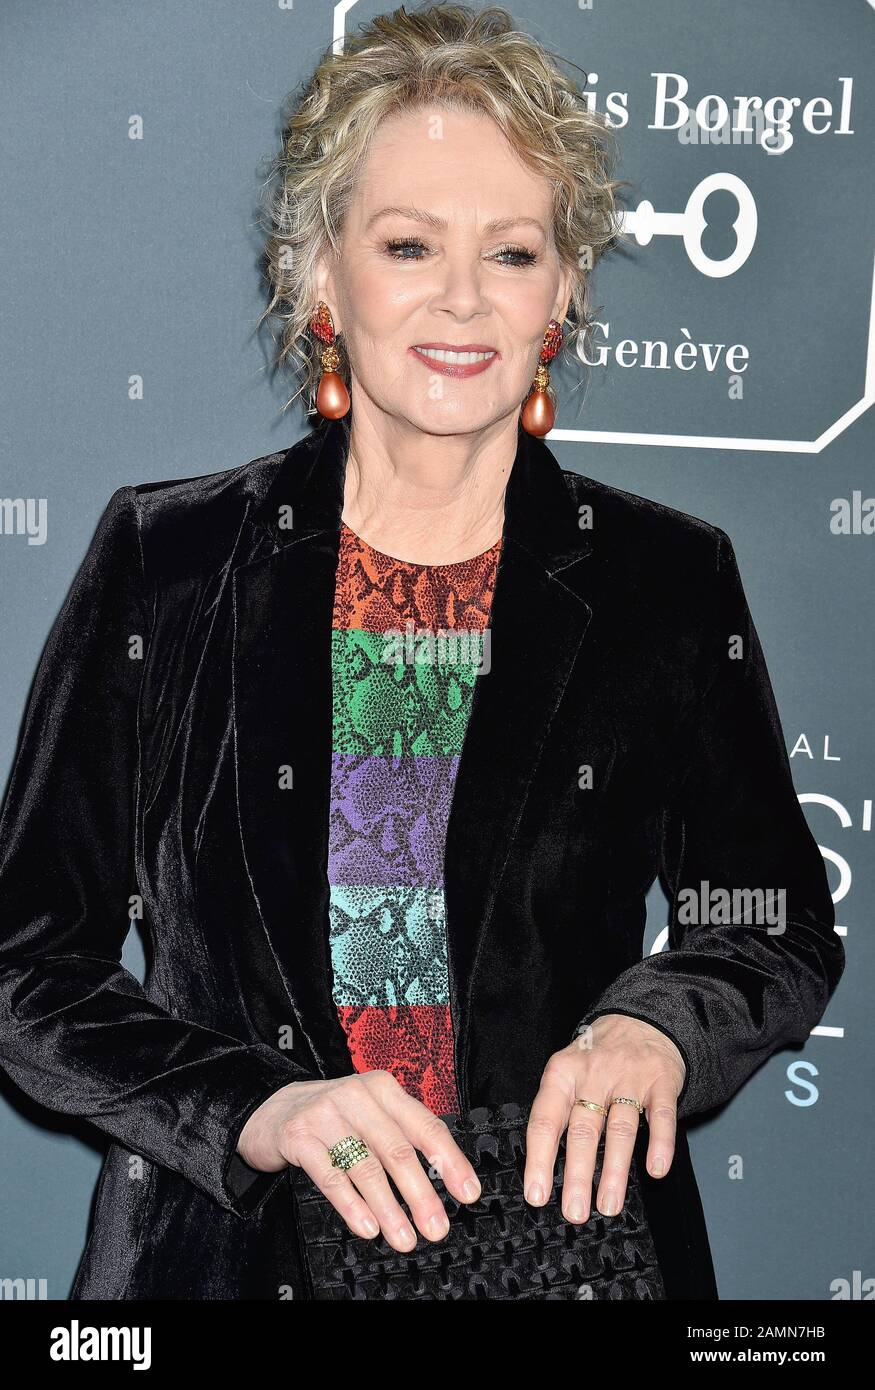 Jean Smart High Resolution Stock Photography And Images Alamy Richard gilliland was born on january 23, 1950 in fort worth, texas, usa as richard morris gilliland. https www alamy com santa monica ca january 12 jean smart attends the 25th annual critics choice awards at barker hangar on january 12 2020 in santa monica california image339757079 html